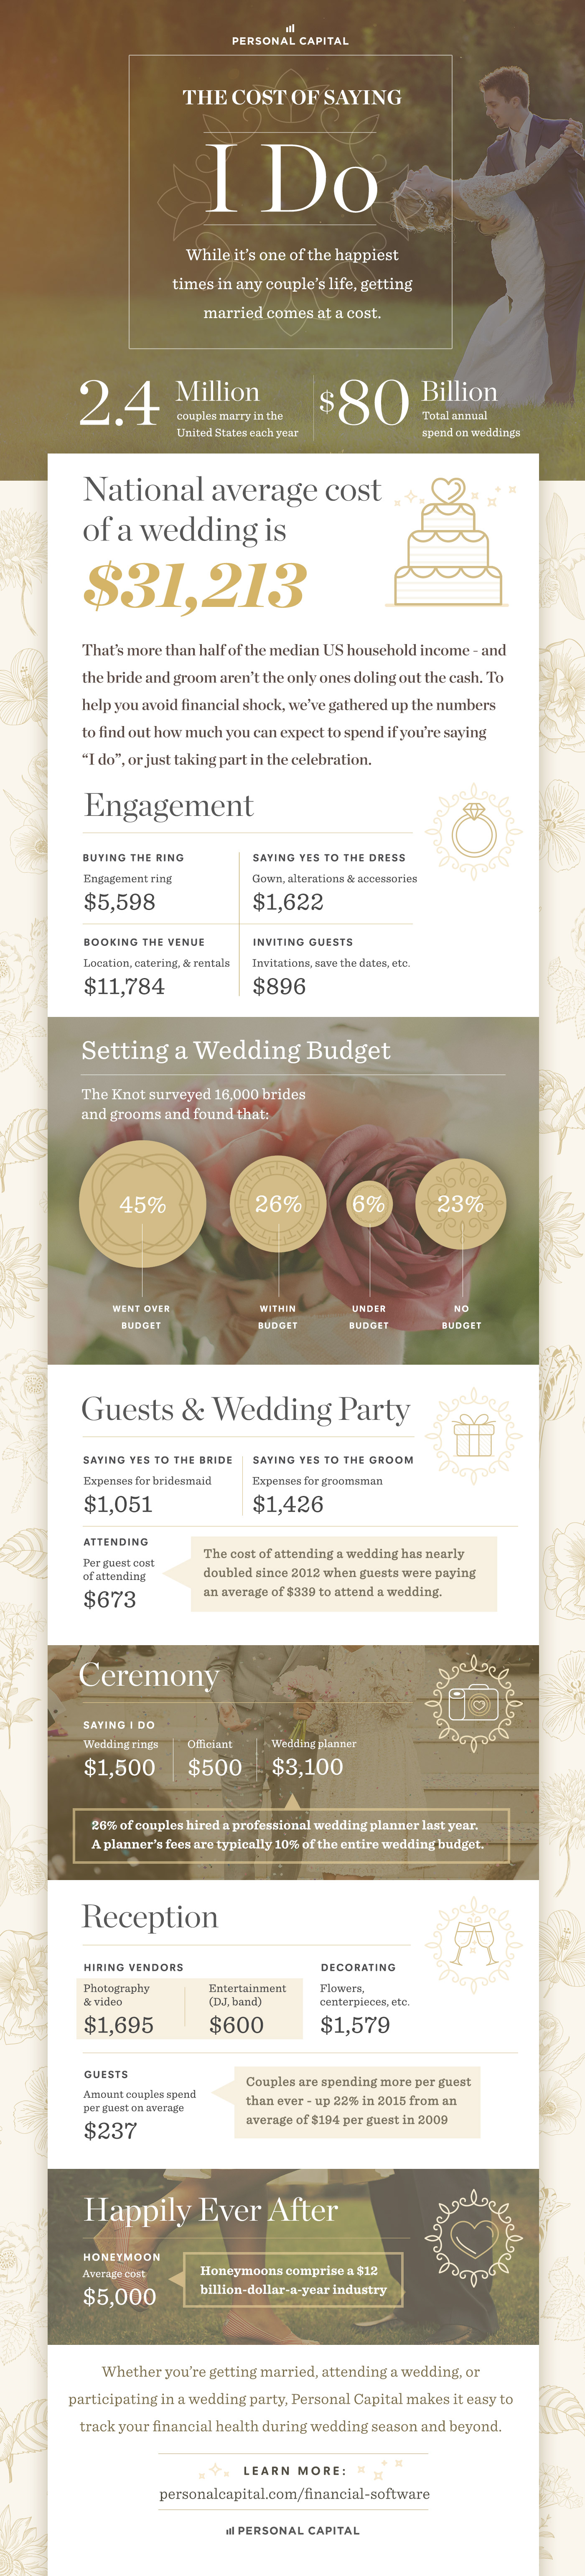 Tips of how to Plan your Big Day Without Breaking Bank! (Collaboration with Personal Capital)